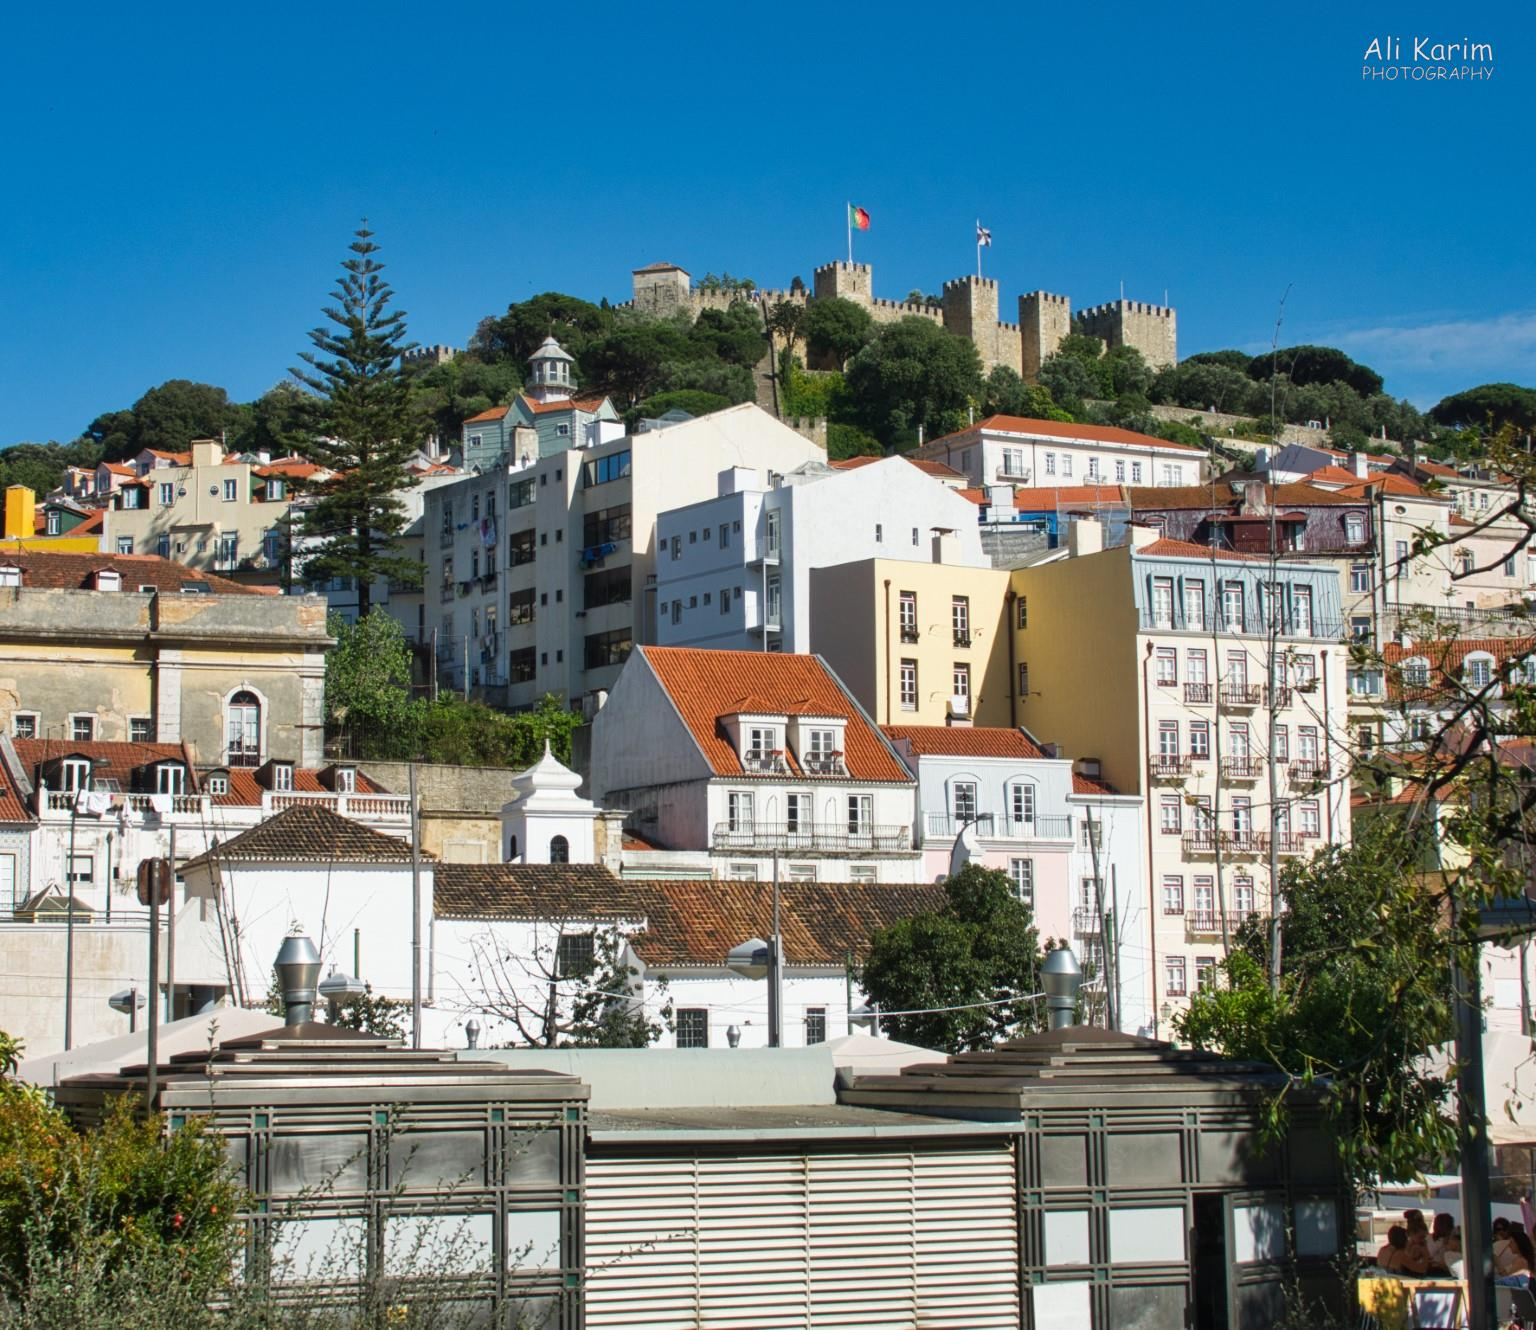 Lisbon Portugal: View of the Moors Castle (Castelo de São Jorge) on the hilltop above Lisbon from Martim Moniz barrio